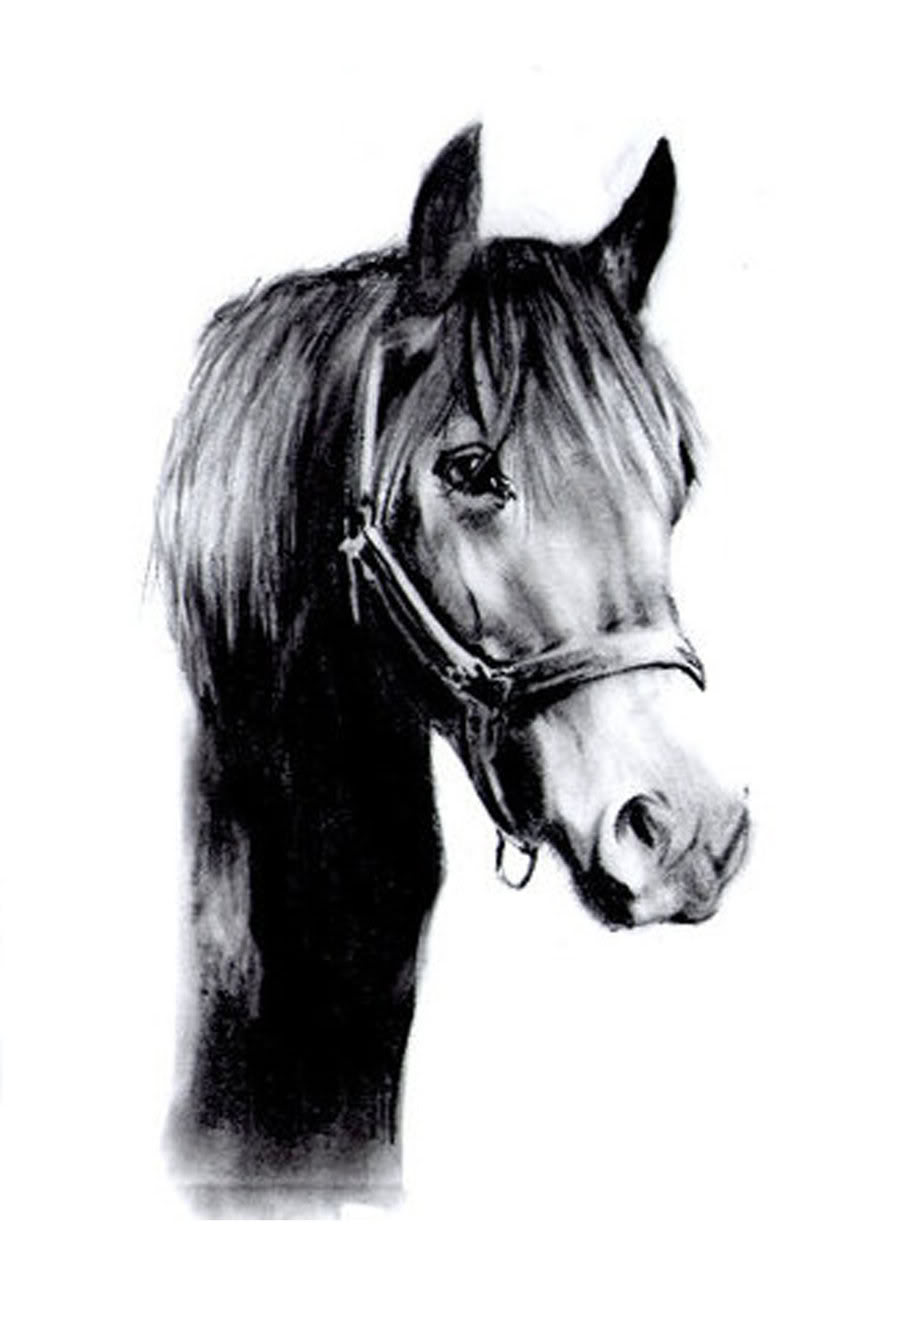 Horse | 馬 | Ngựa Black_horse_drawing_by_slippy88-d2xjvnp